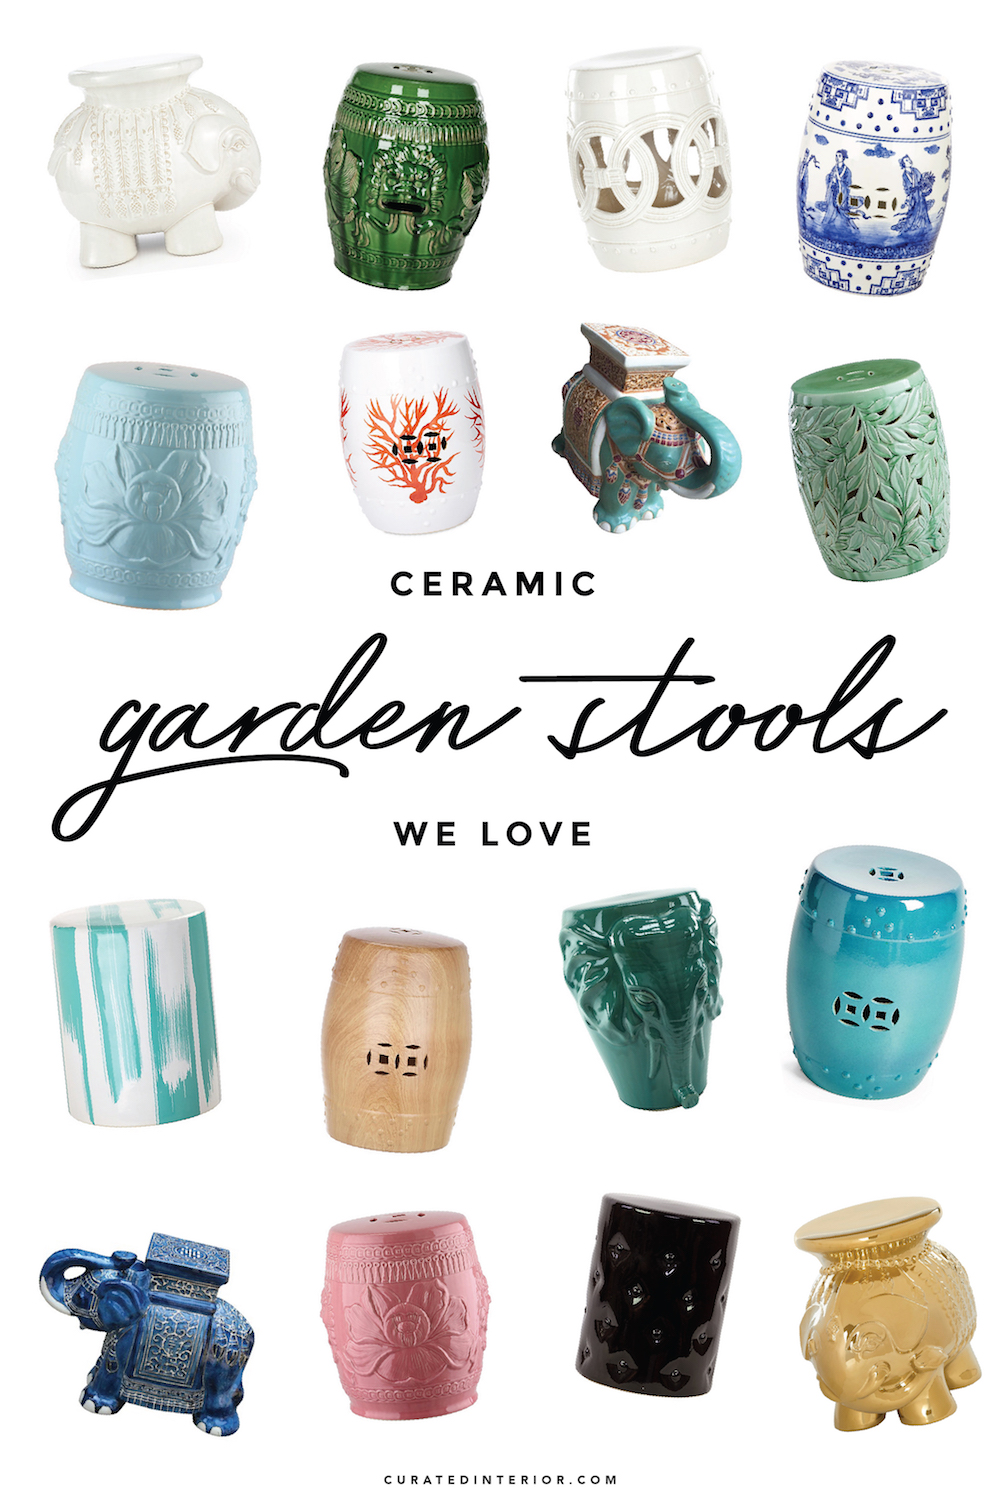 30 Gorgeous Ceramic Garden Stools For Summer